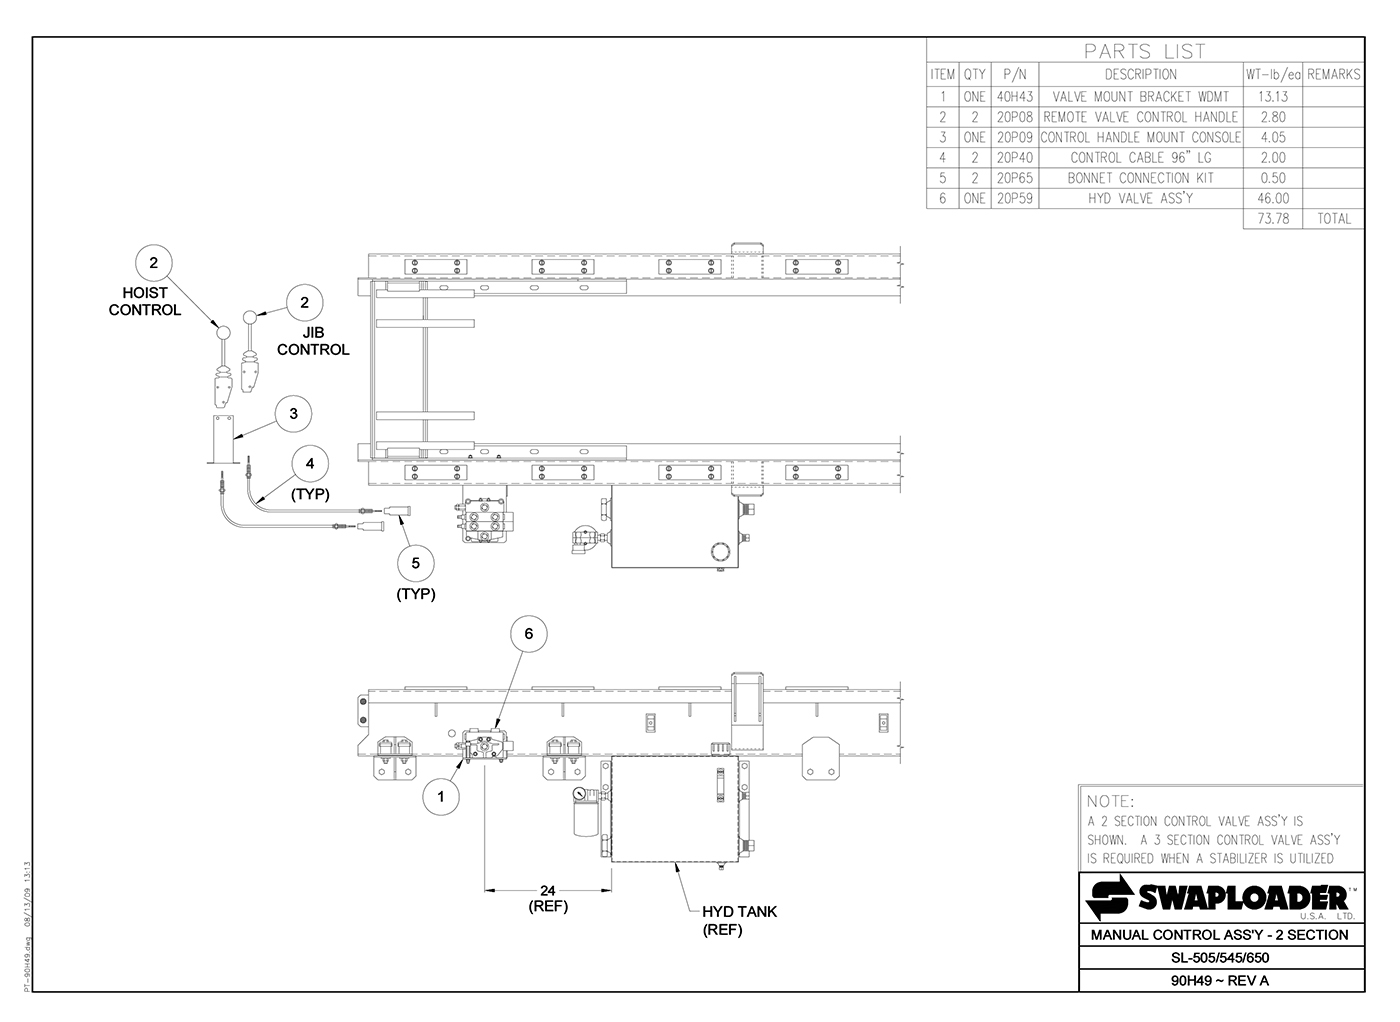 SL-505/545/650 Manual Control Assembly (2 Section) Diagram